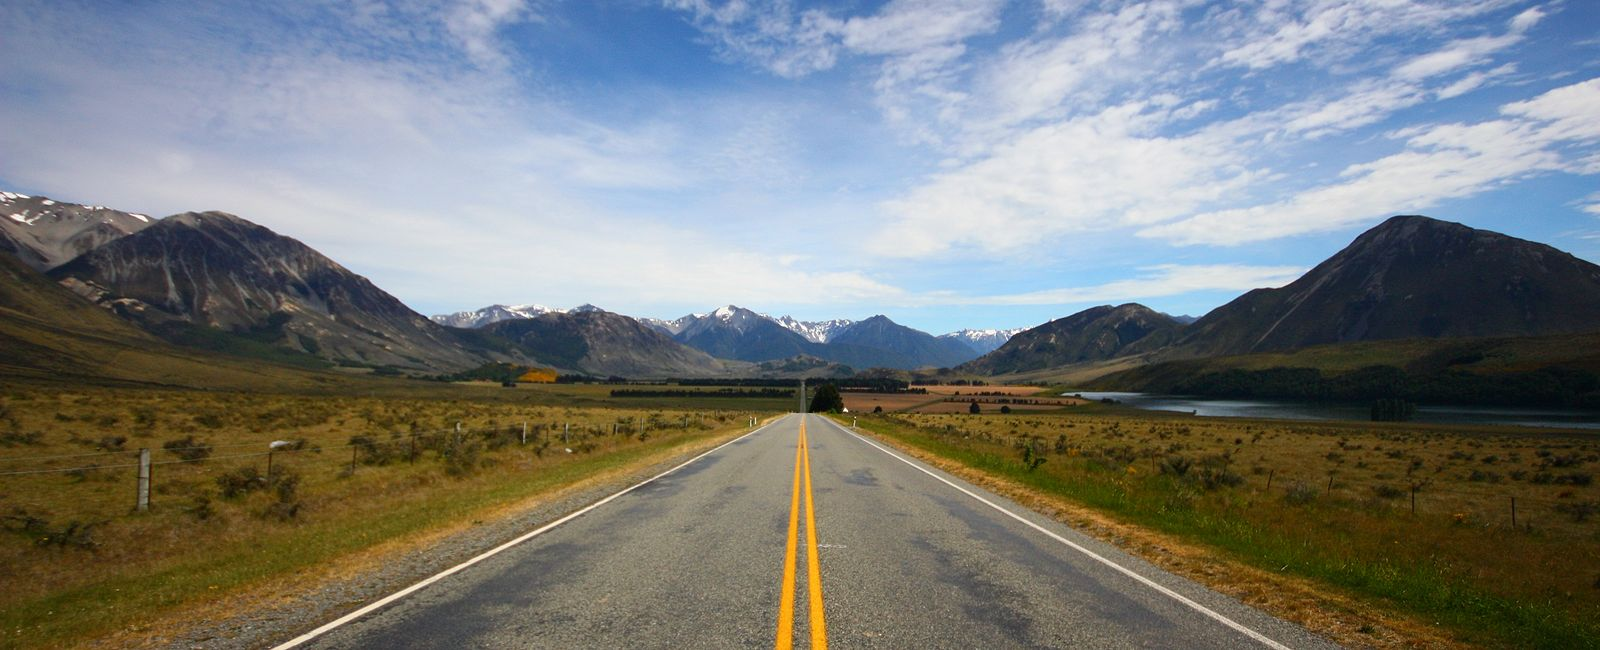 long road into the mountains